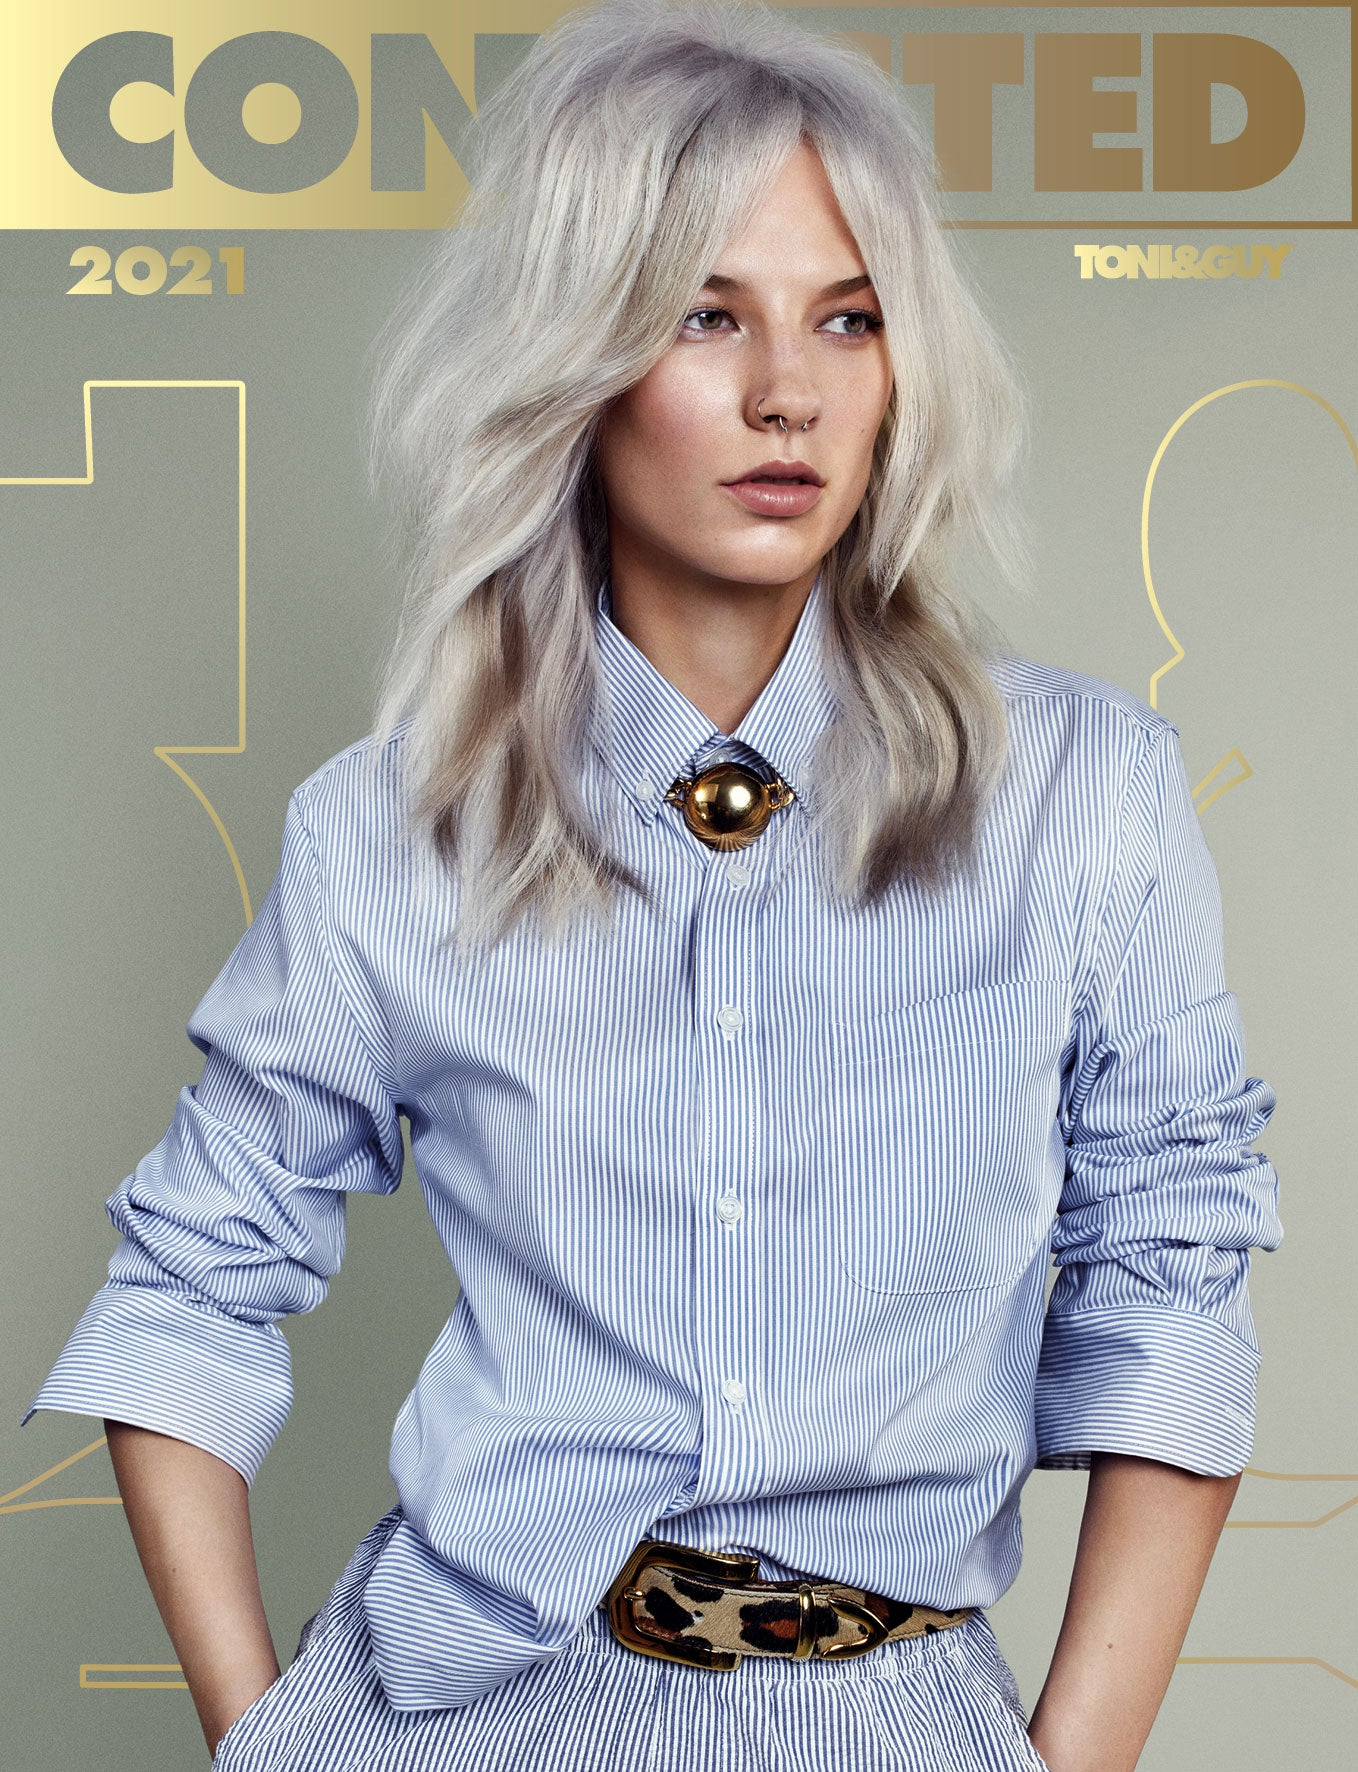 Toni & Guy Connected 2021